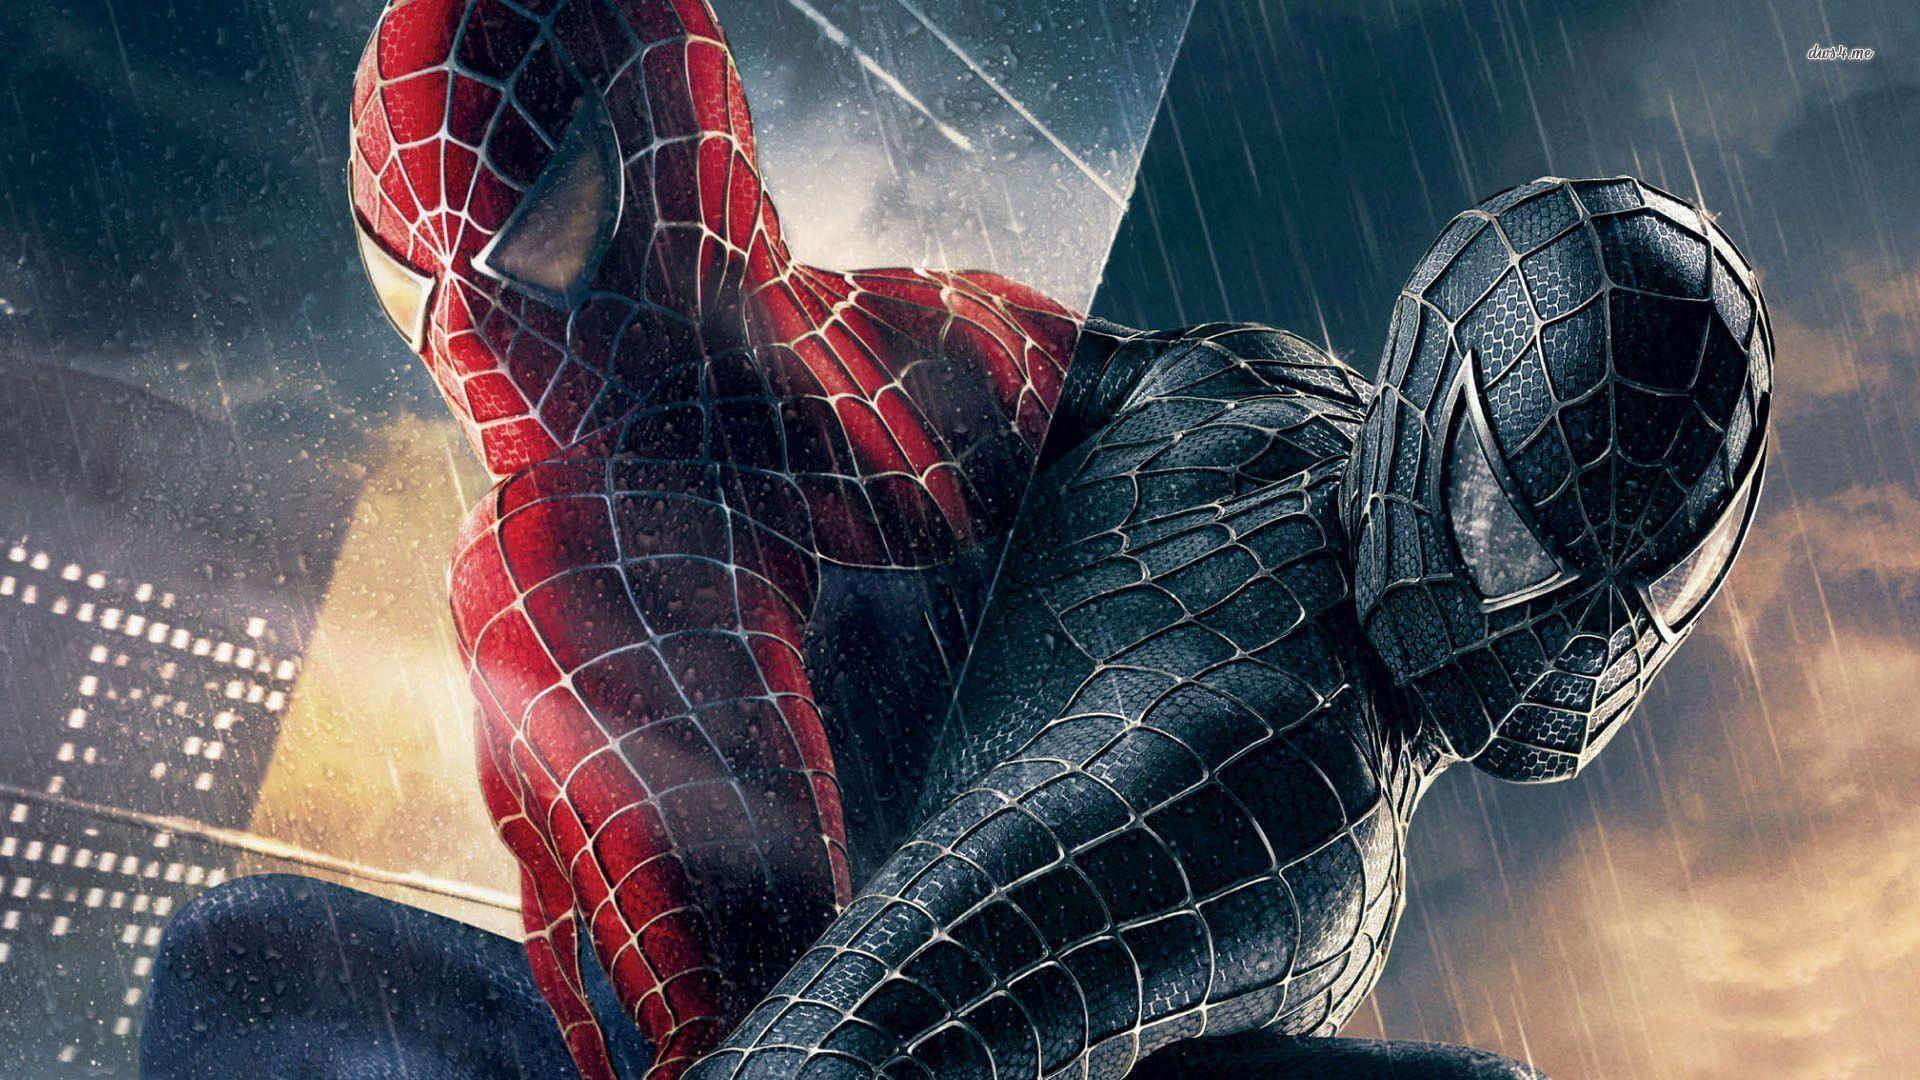 Hd Spider Man Wallpaper, Hollywood, Widescreen, Stanlee, Team Cap